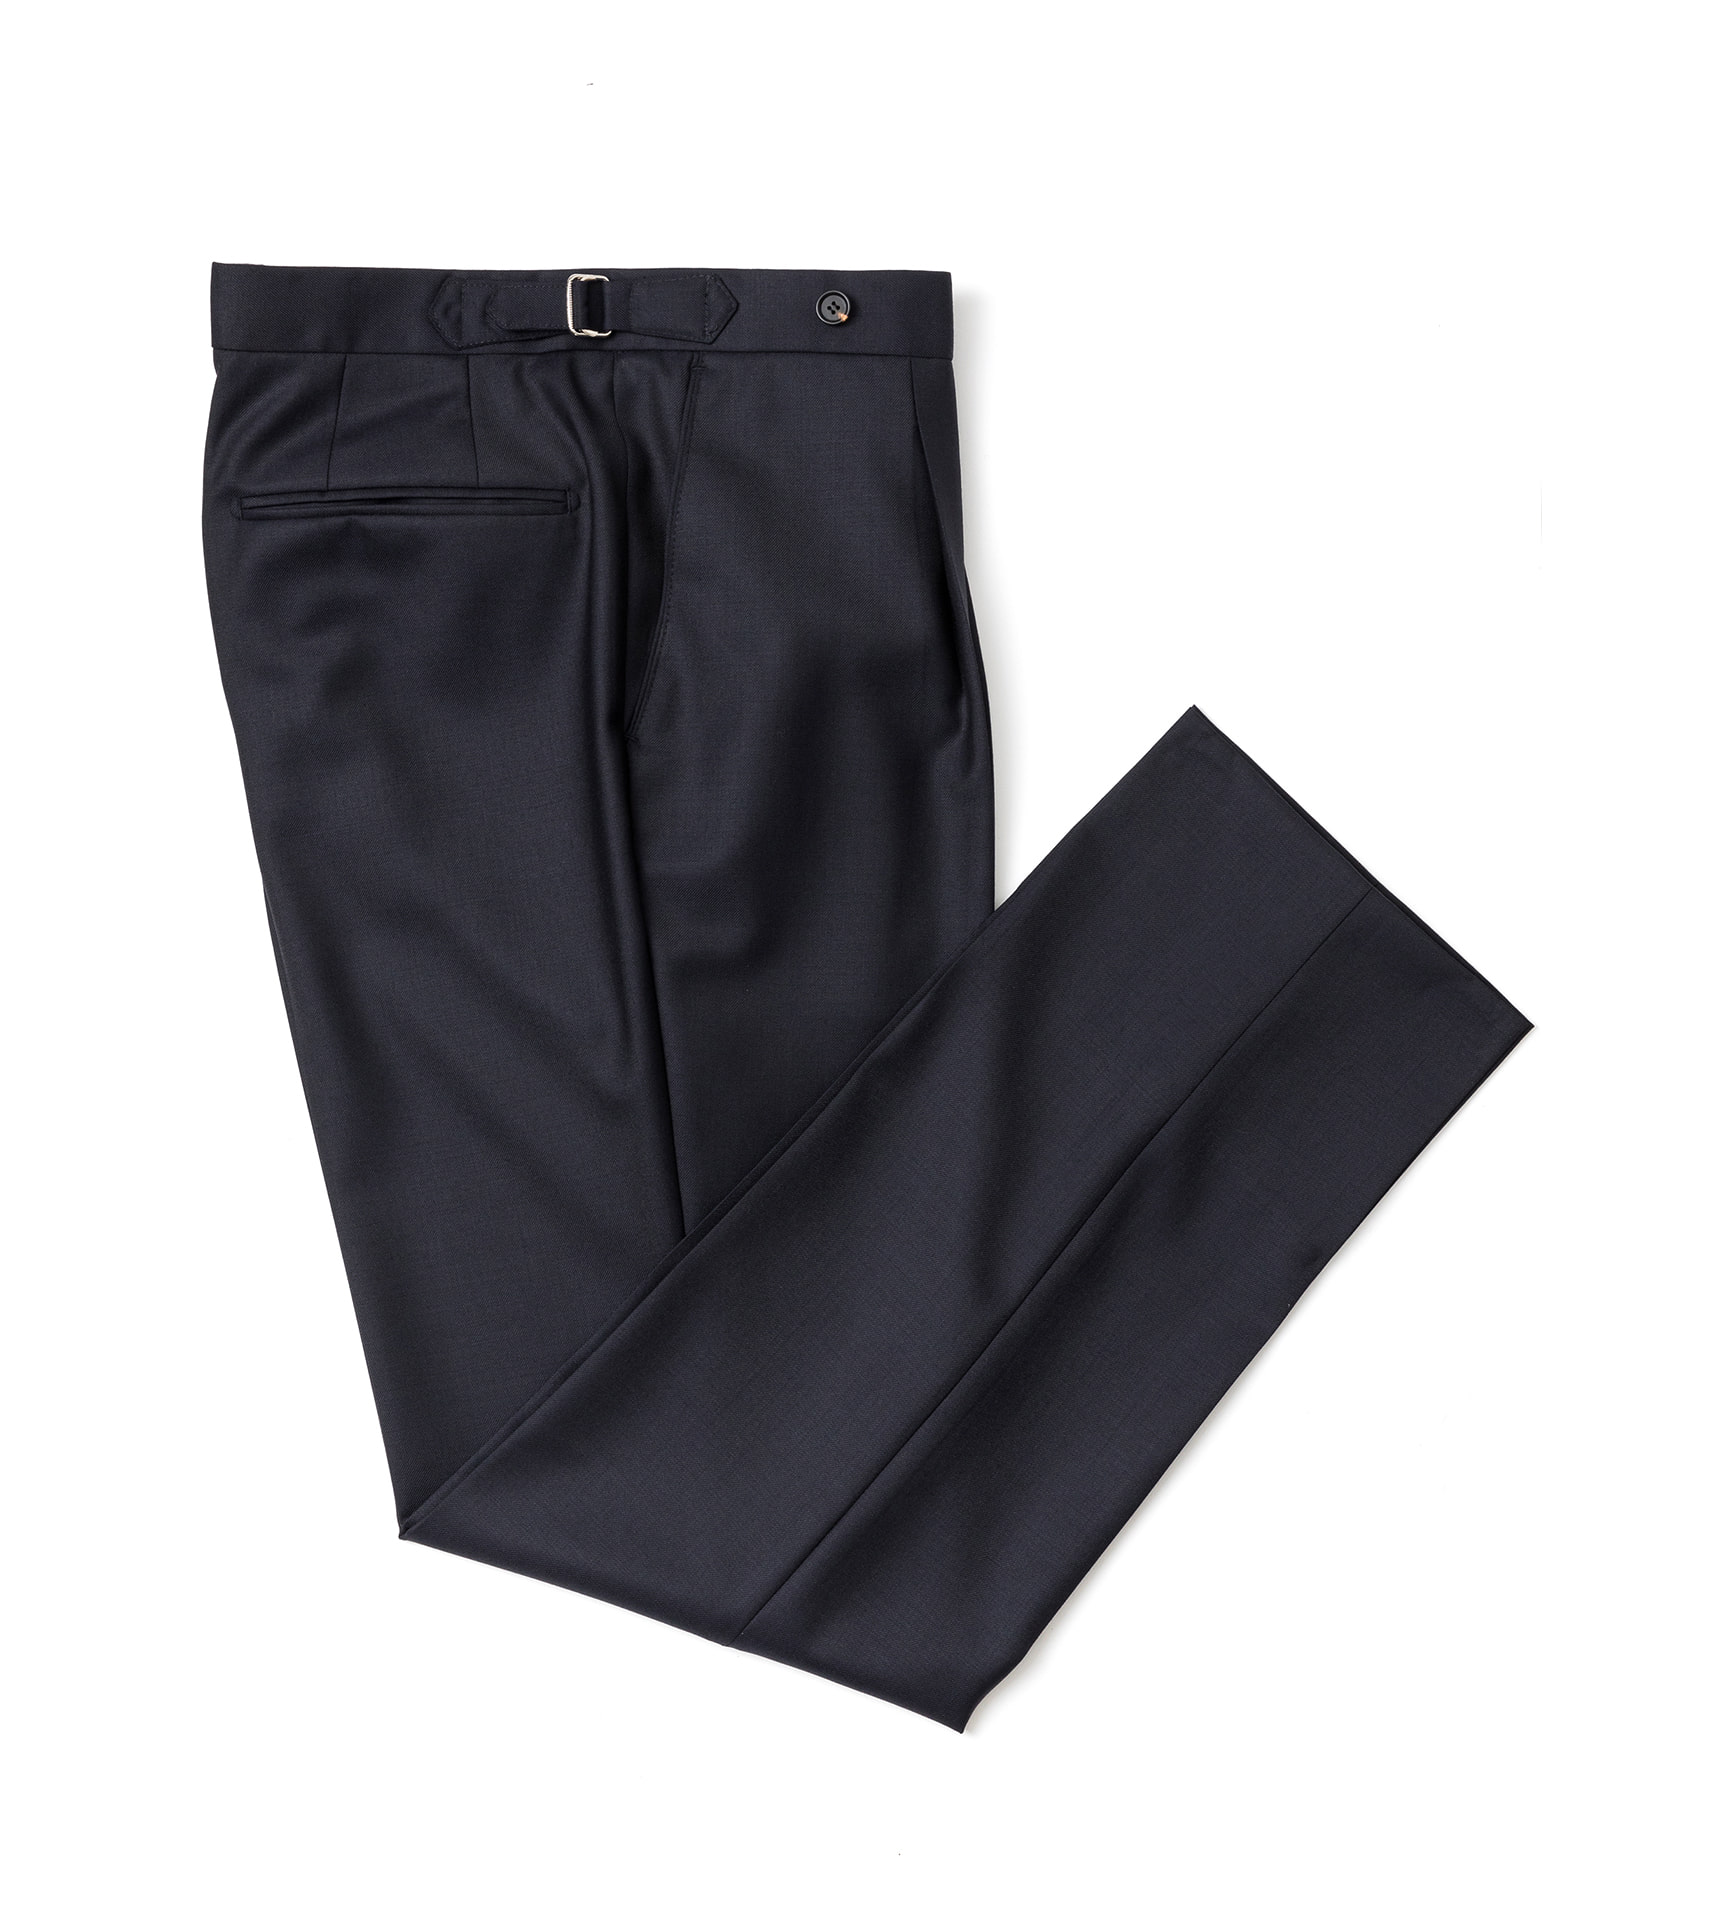 Barrington Wool pants - Navy (one pleats)ESTADO(에스타도)